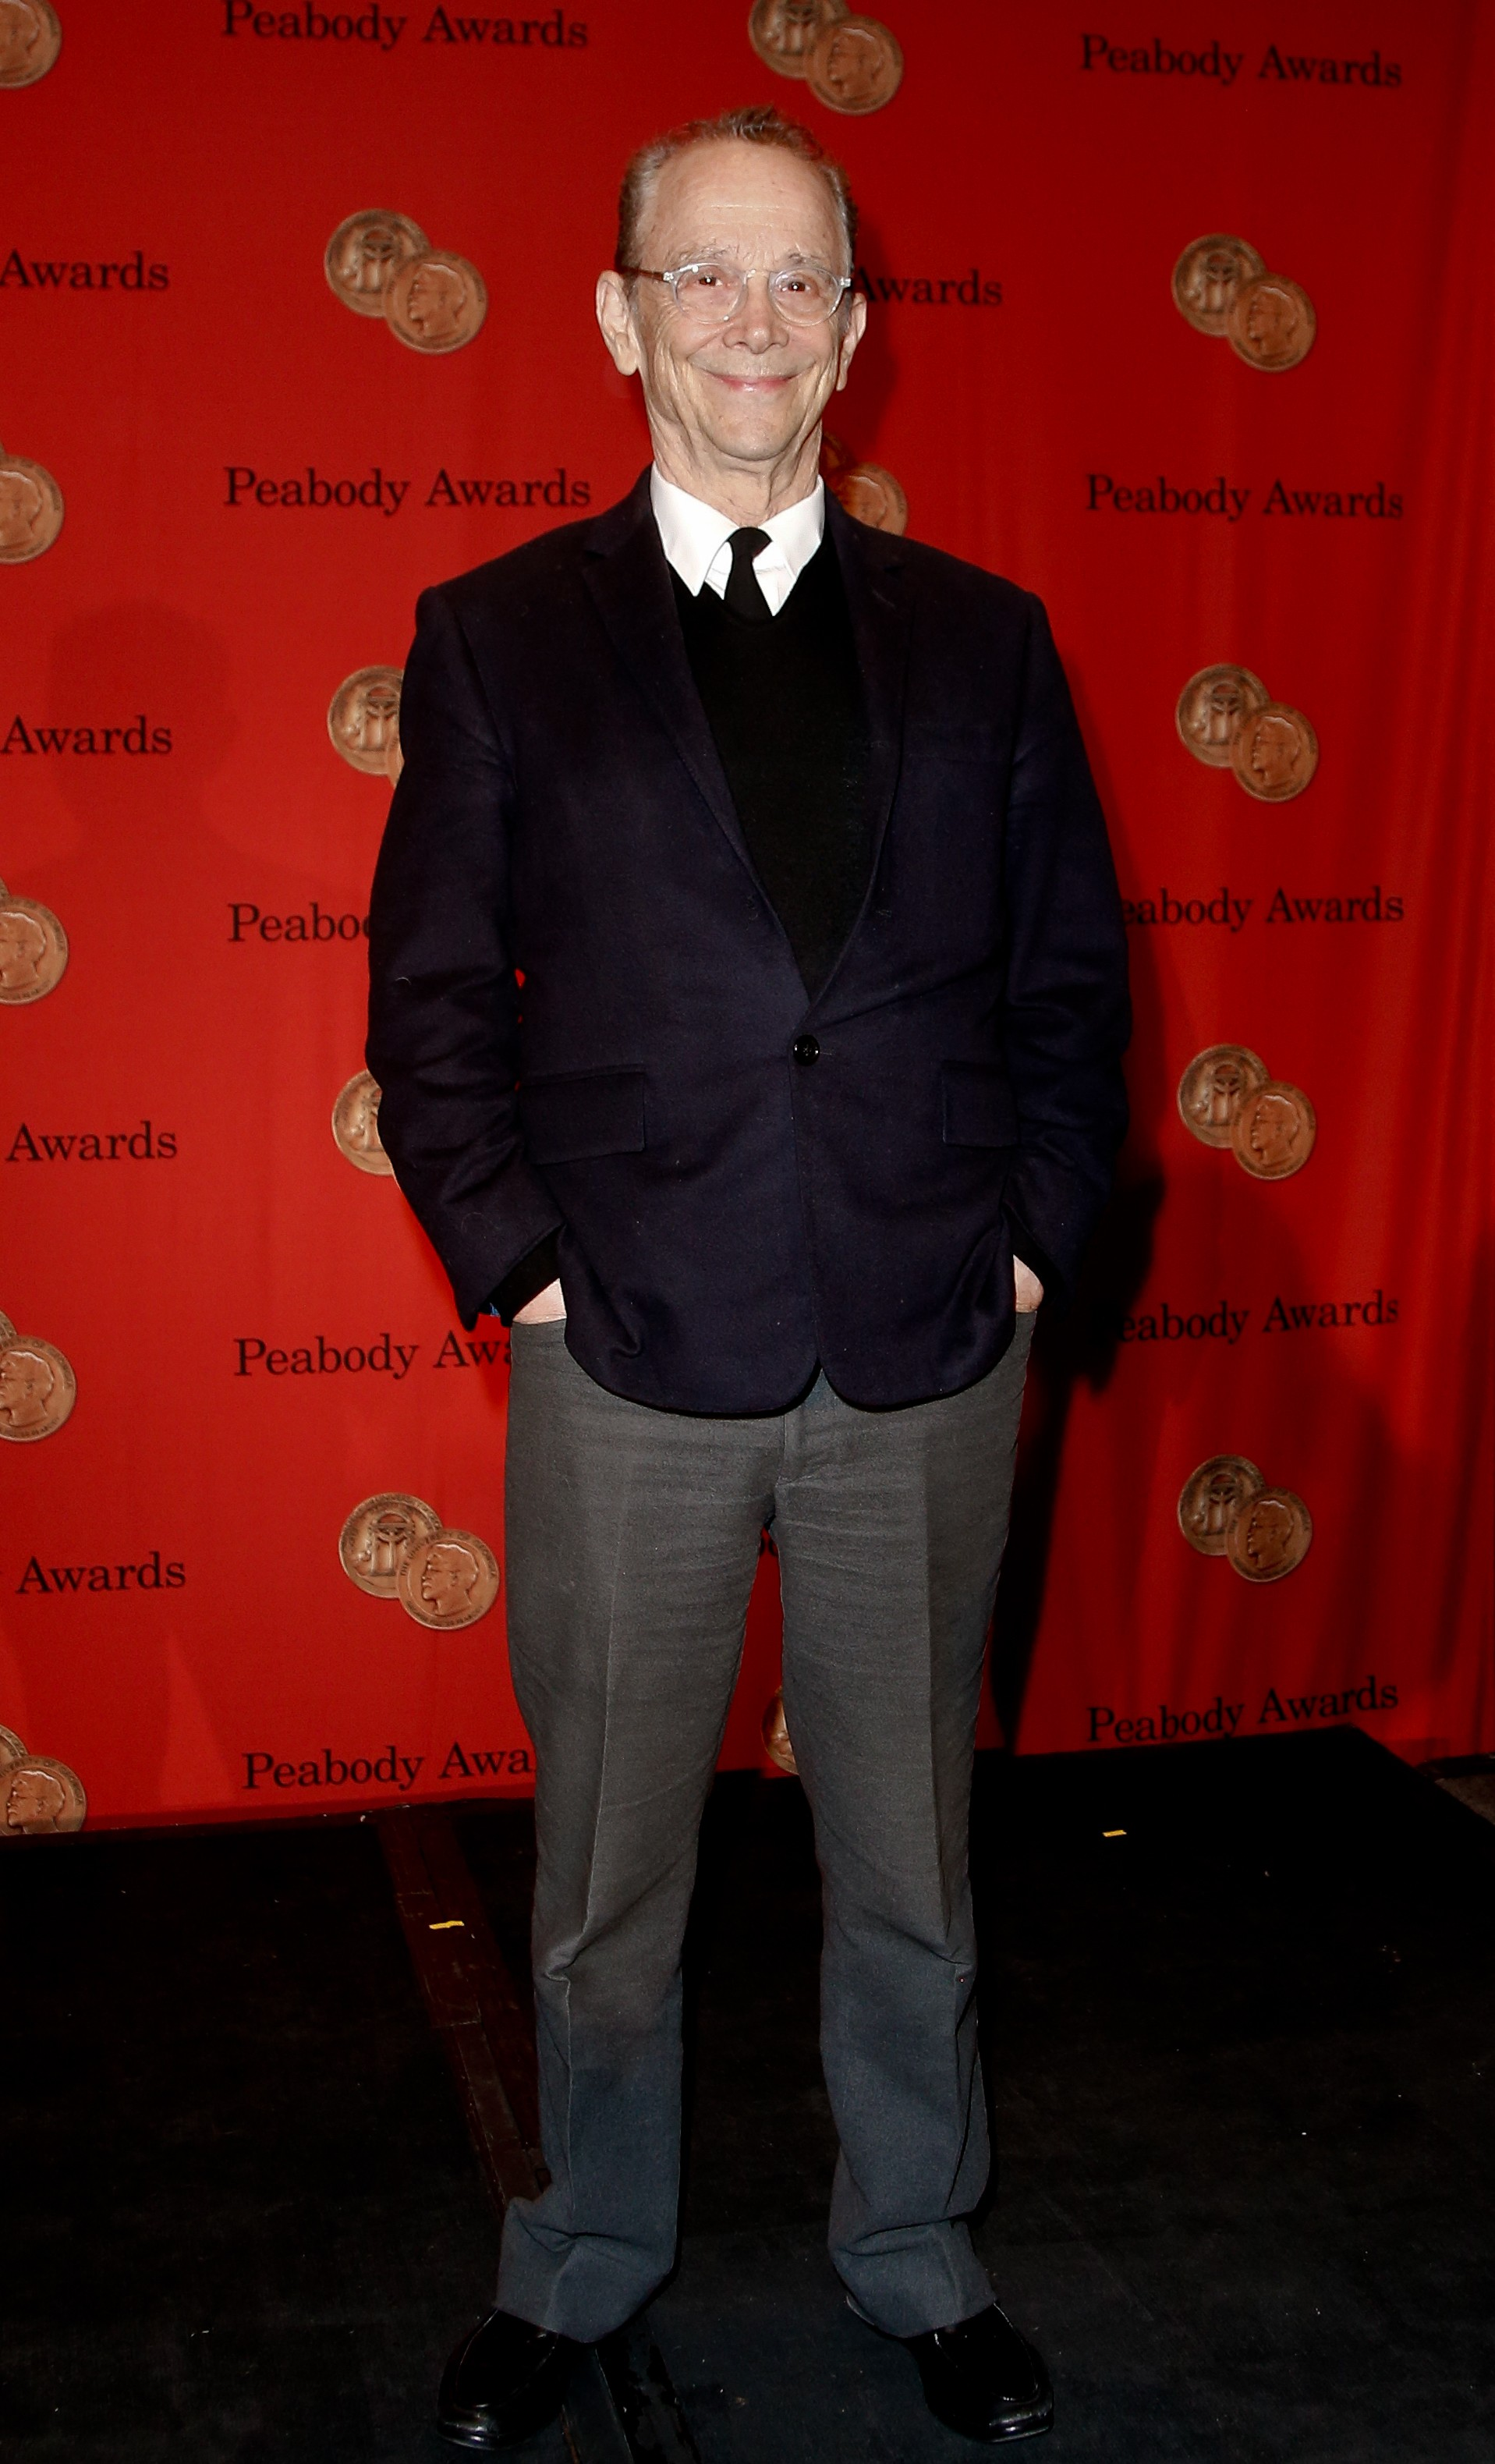 Actor Joel Grey attends the 73rd Annual George Foster Peabody Awards at the Waldorf Astoria on May 19, 2014 in New York.